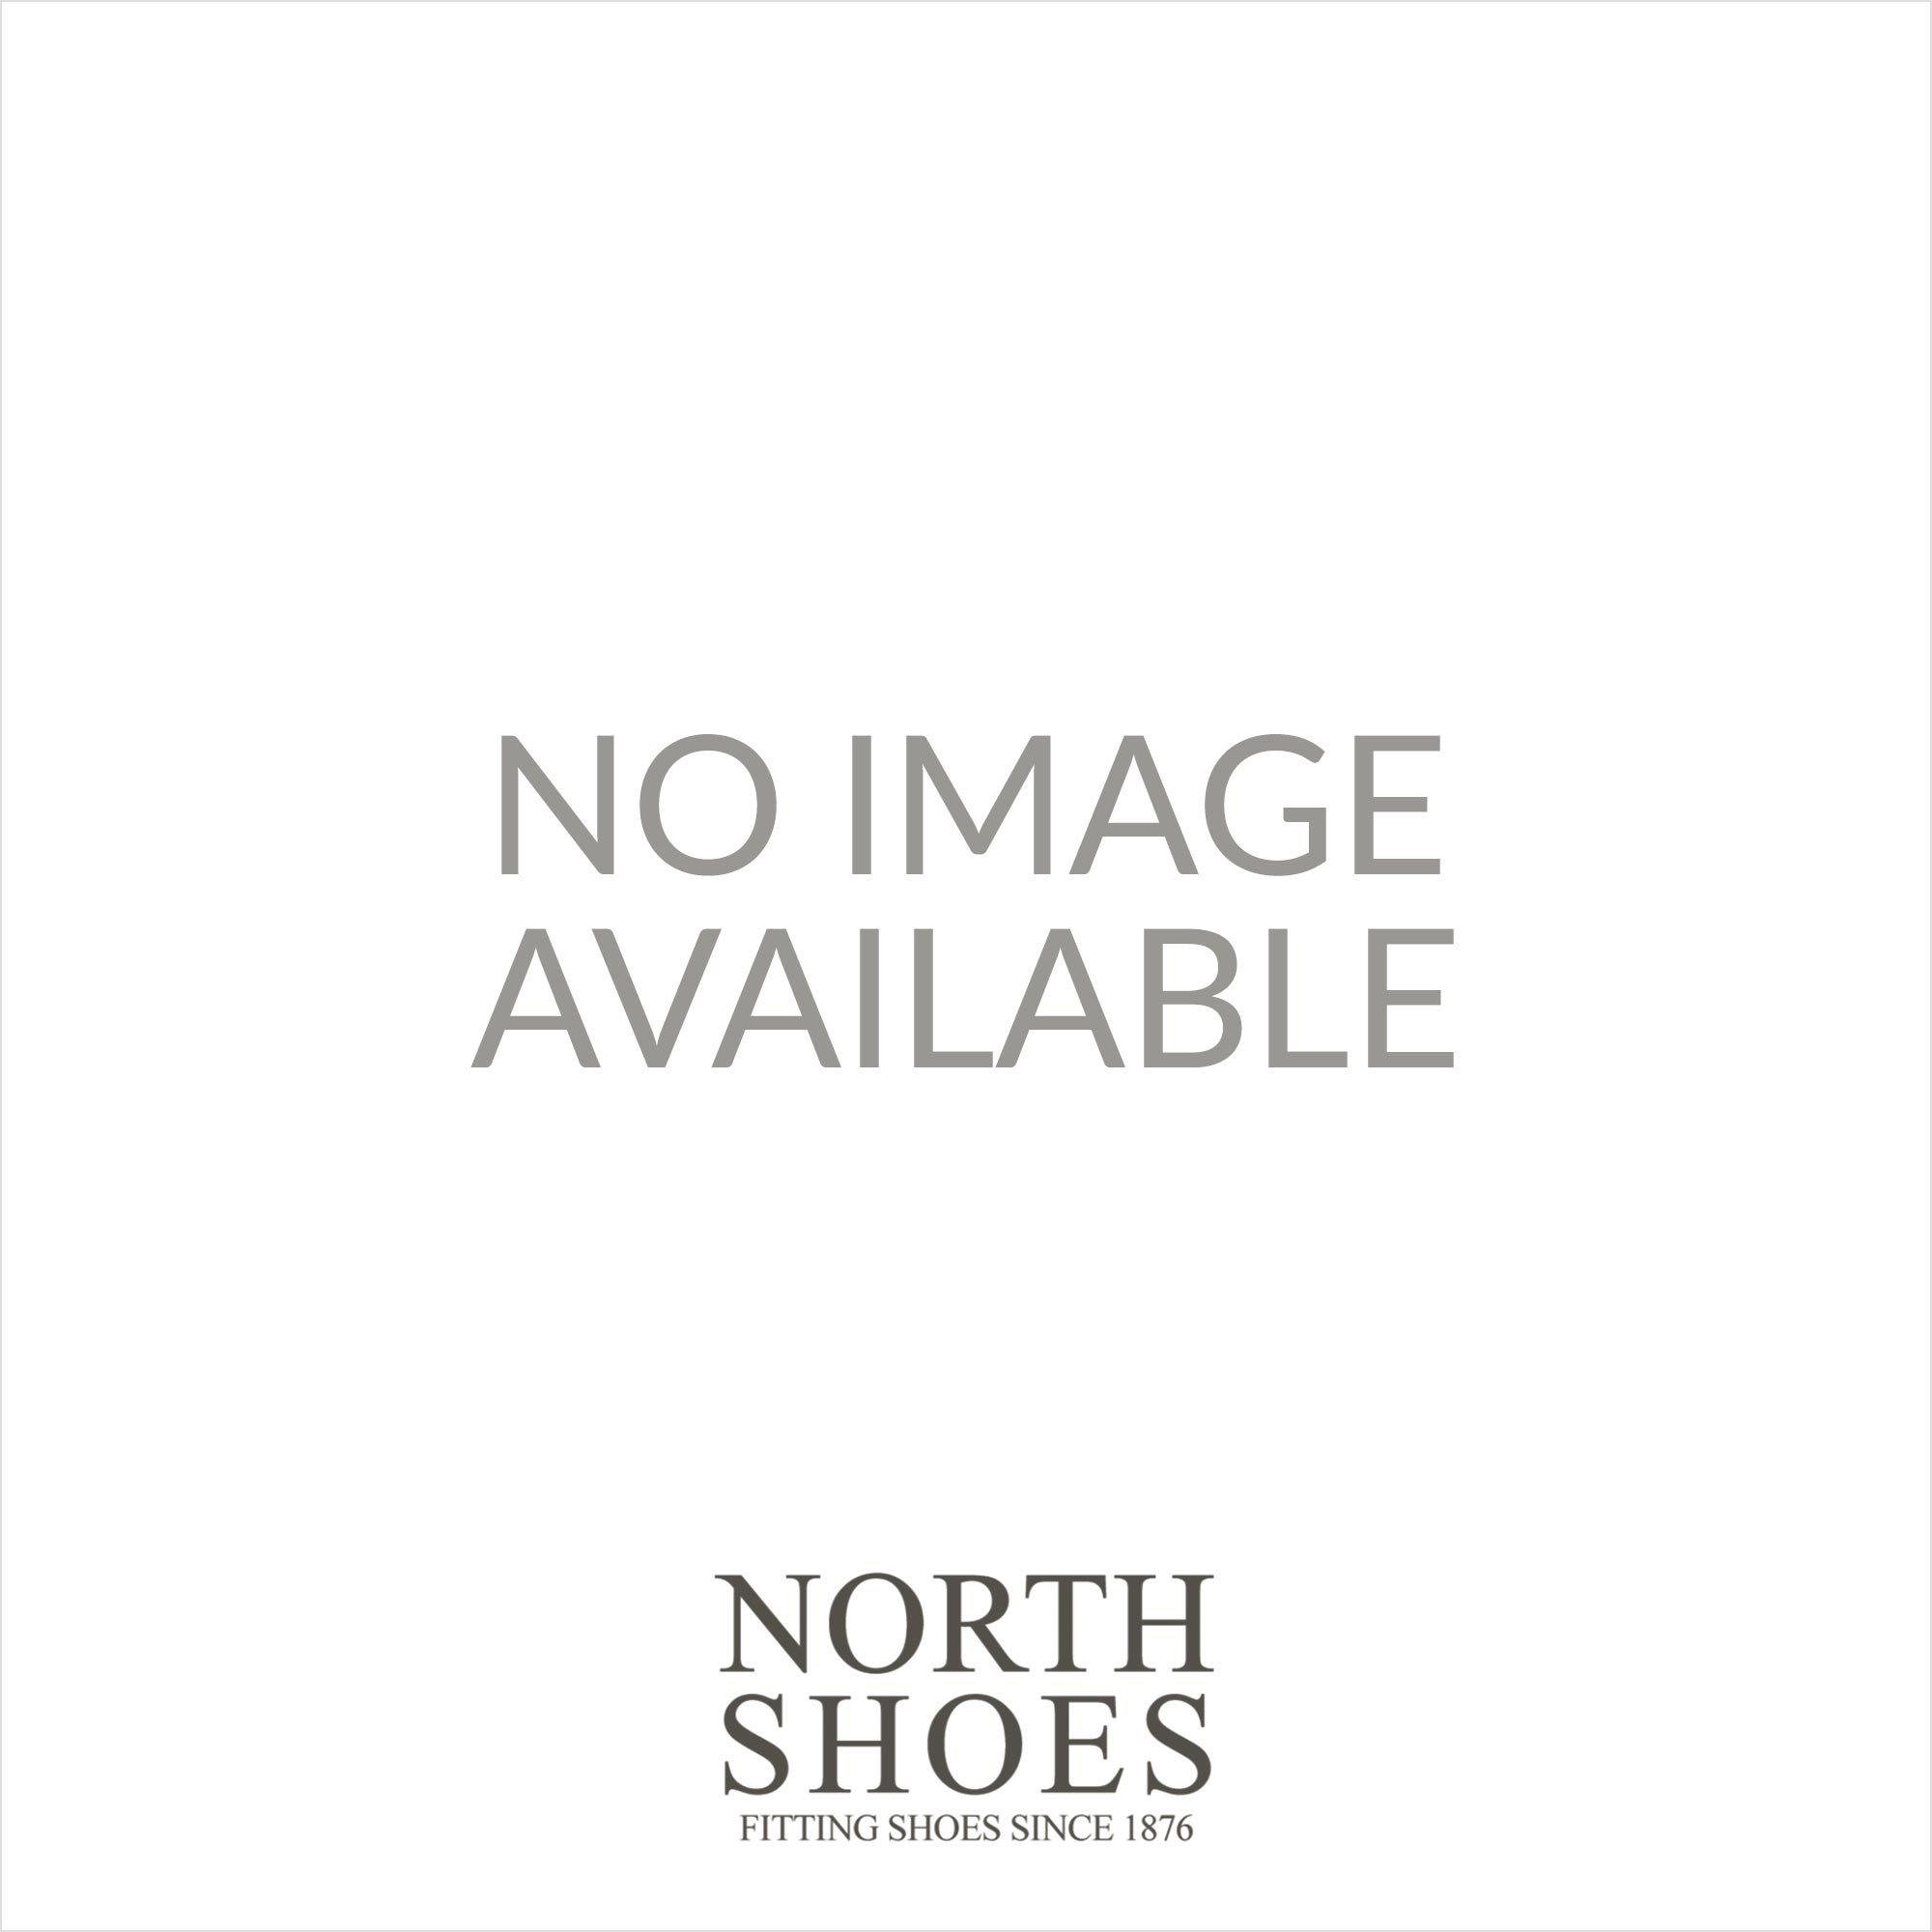 f6a5346d46d Clarks Petrina Selma Black Leather Womens Espadrille Buckle Wedge Sandal -  Clarks from North Shoes UK